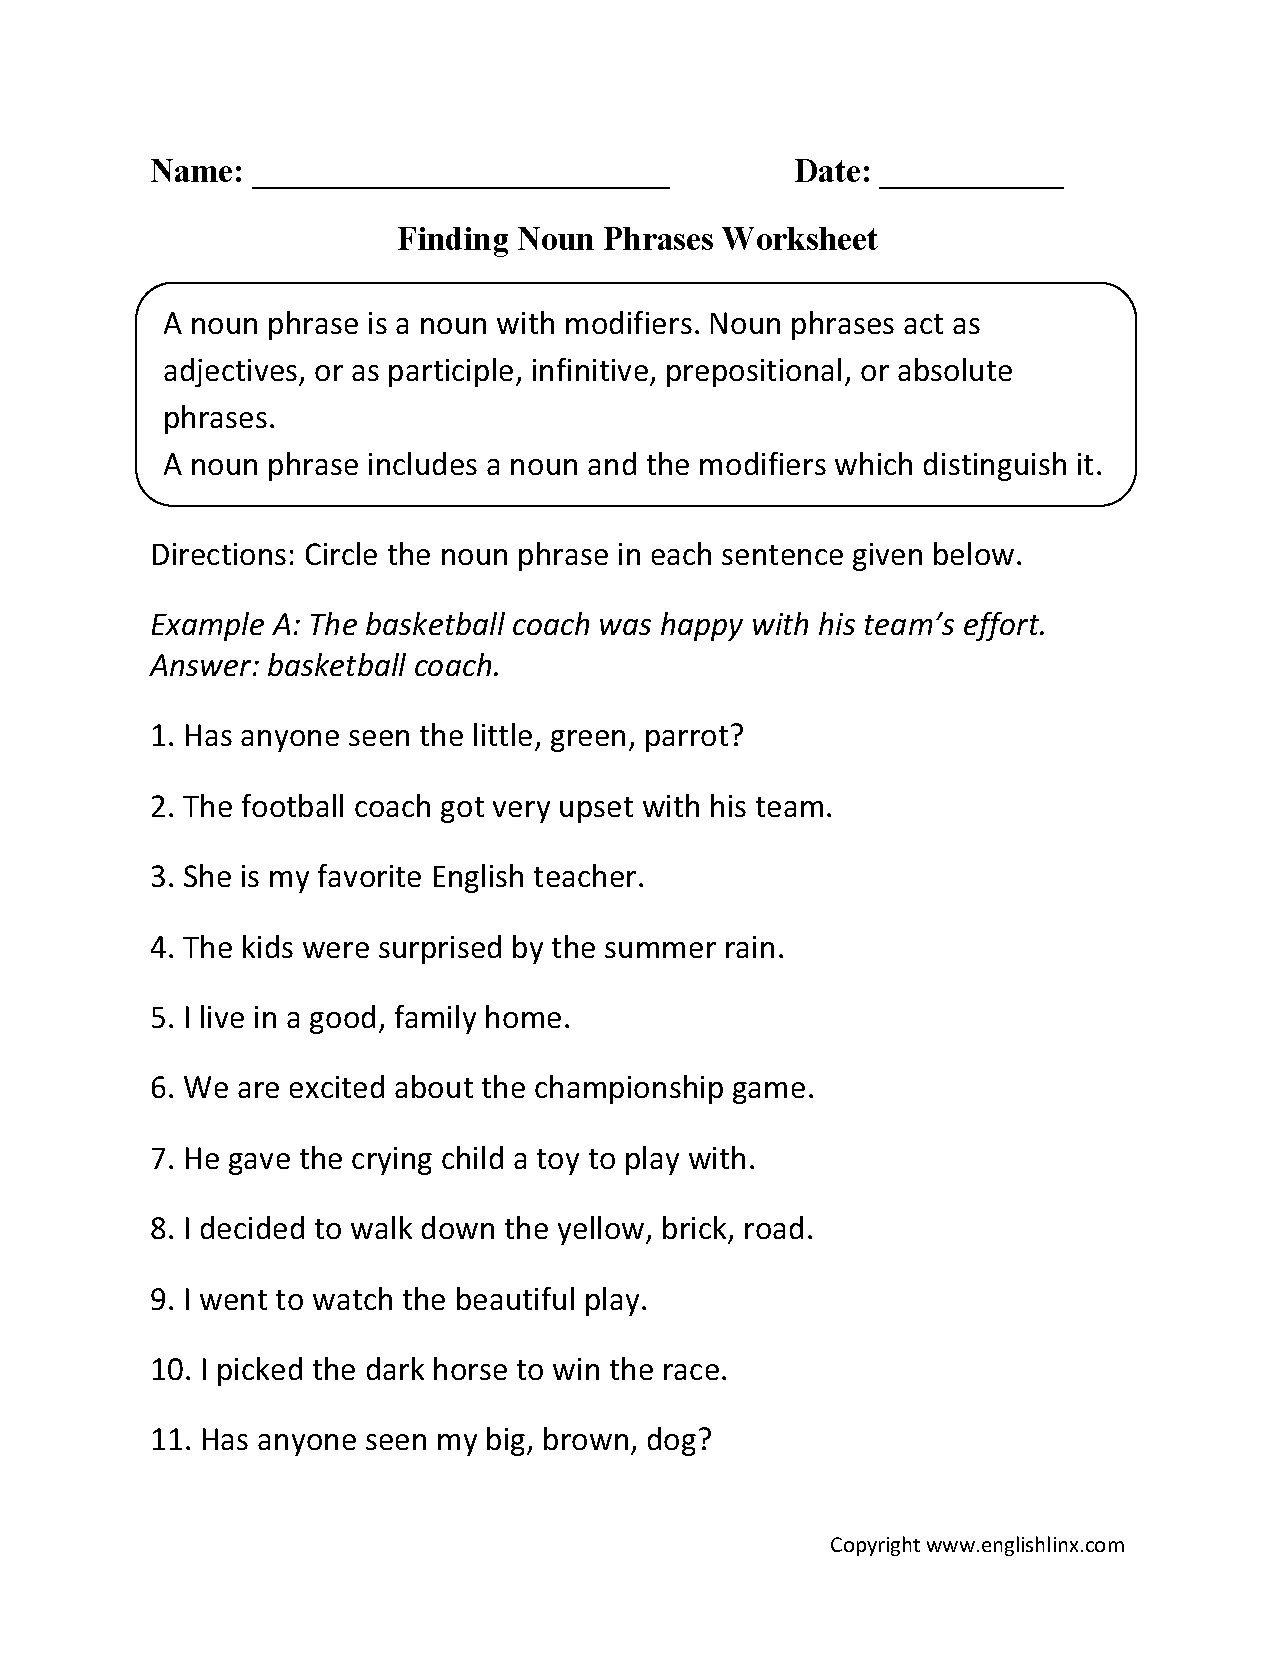 Worksheets Noun Clauses Worksheet finding noun phrases worksheets teaching nouns pinterest free for use at school or home a is word that names person place thing idea are used in your wr